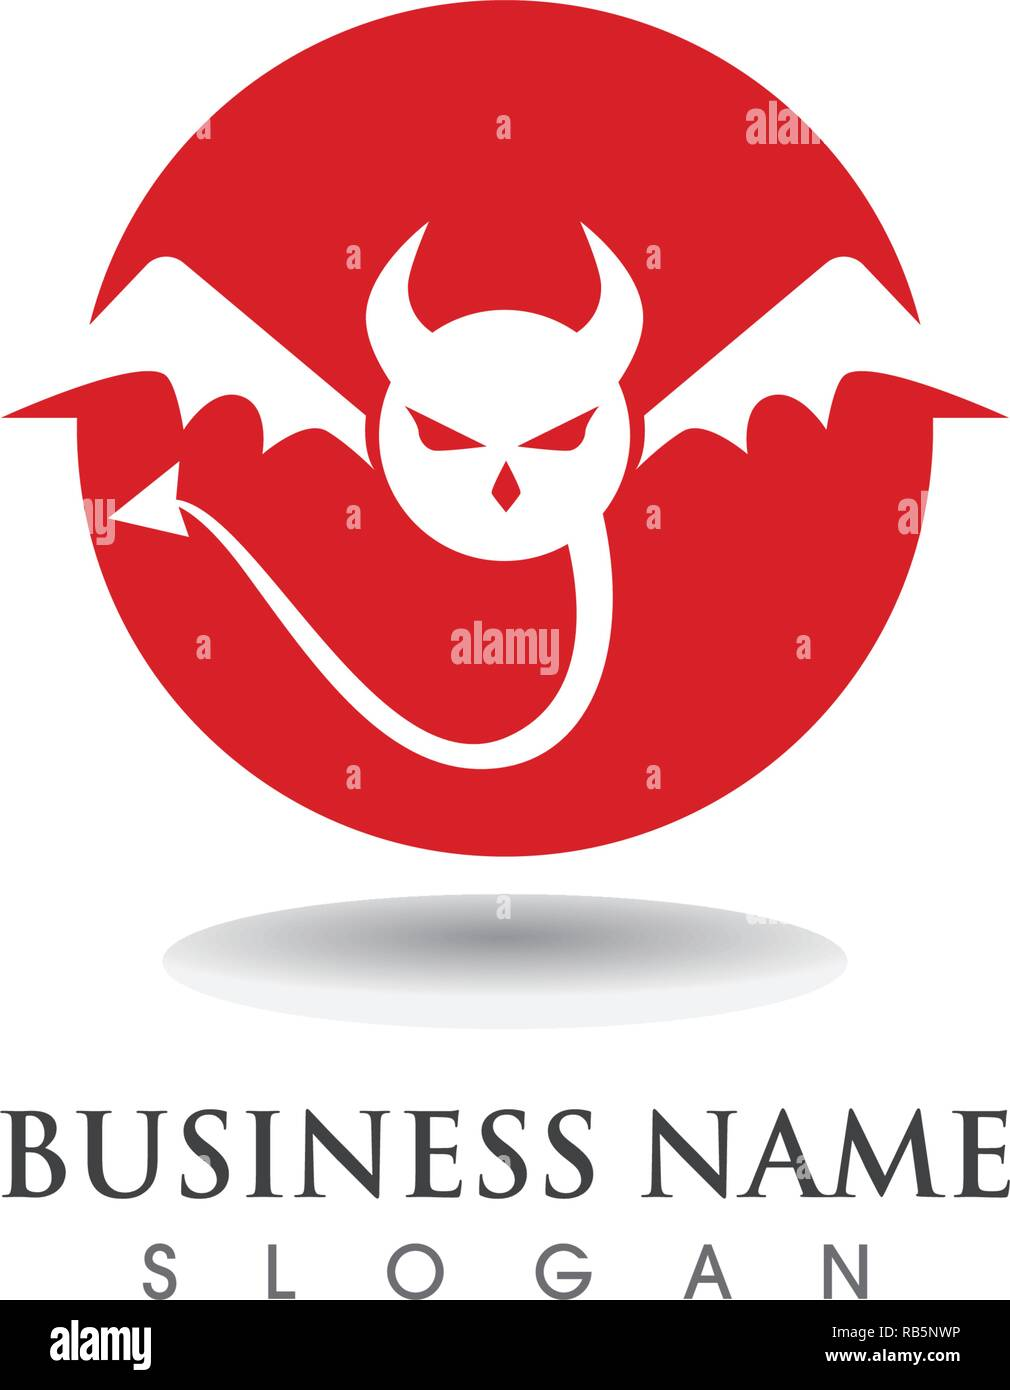 devil logo high resolution stock photography and images alamy https www alamy com devil logo vector icon template image230622946 html